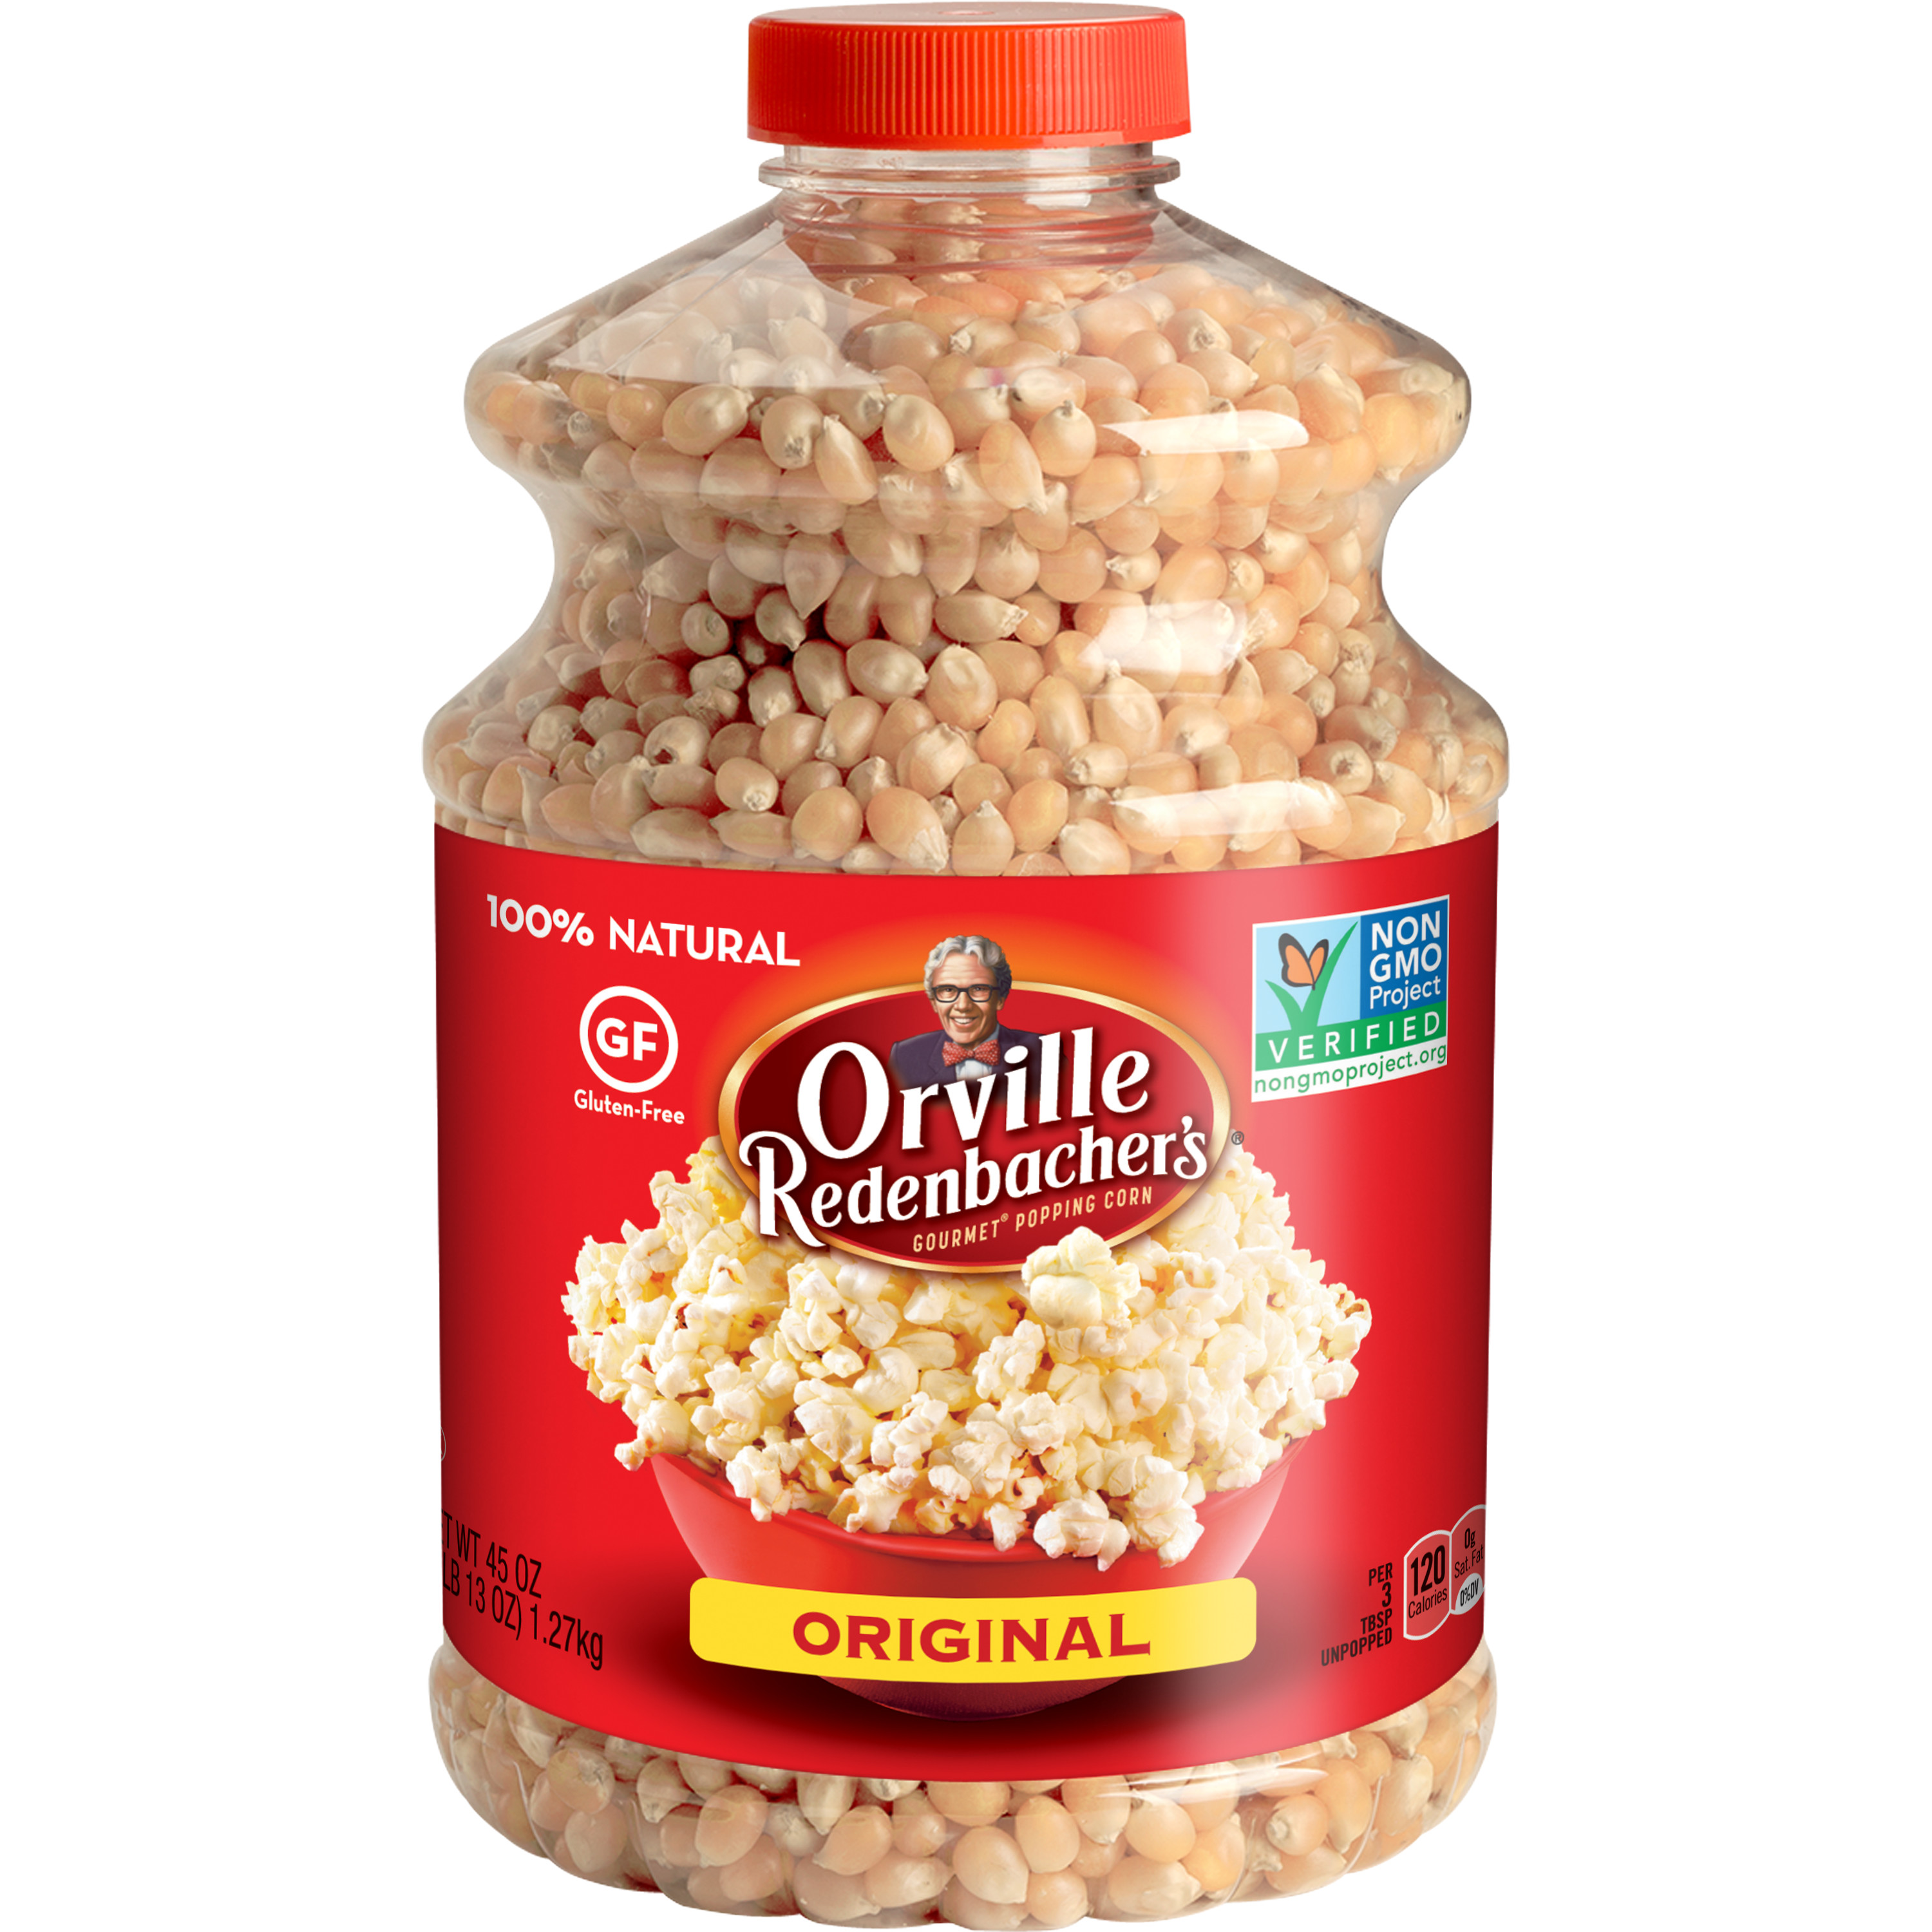 Orville Redenbacher's Original Gourmet Popping Corn, 1 ct